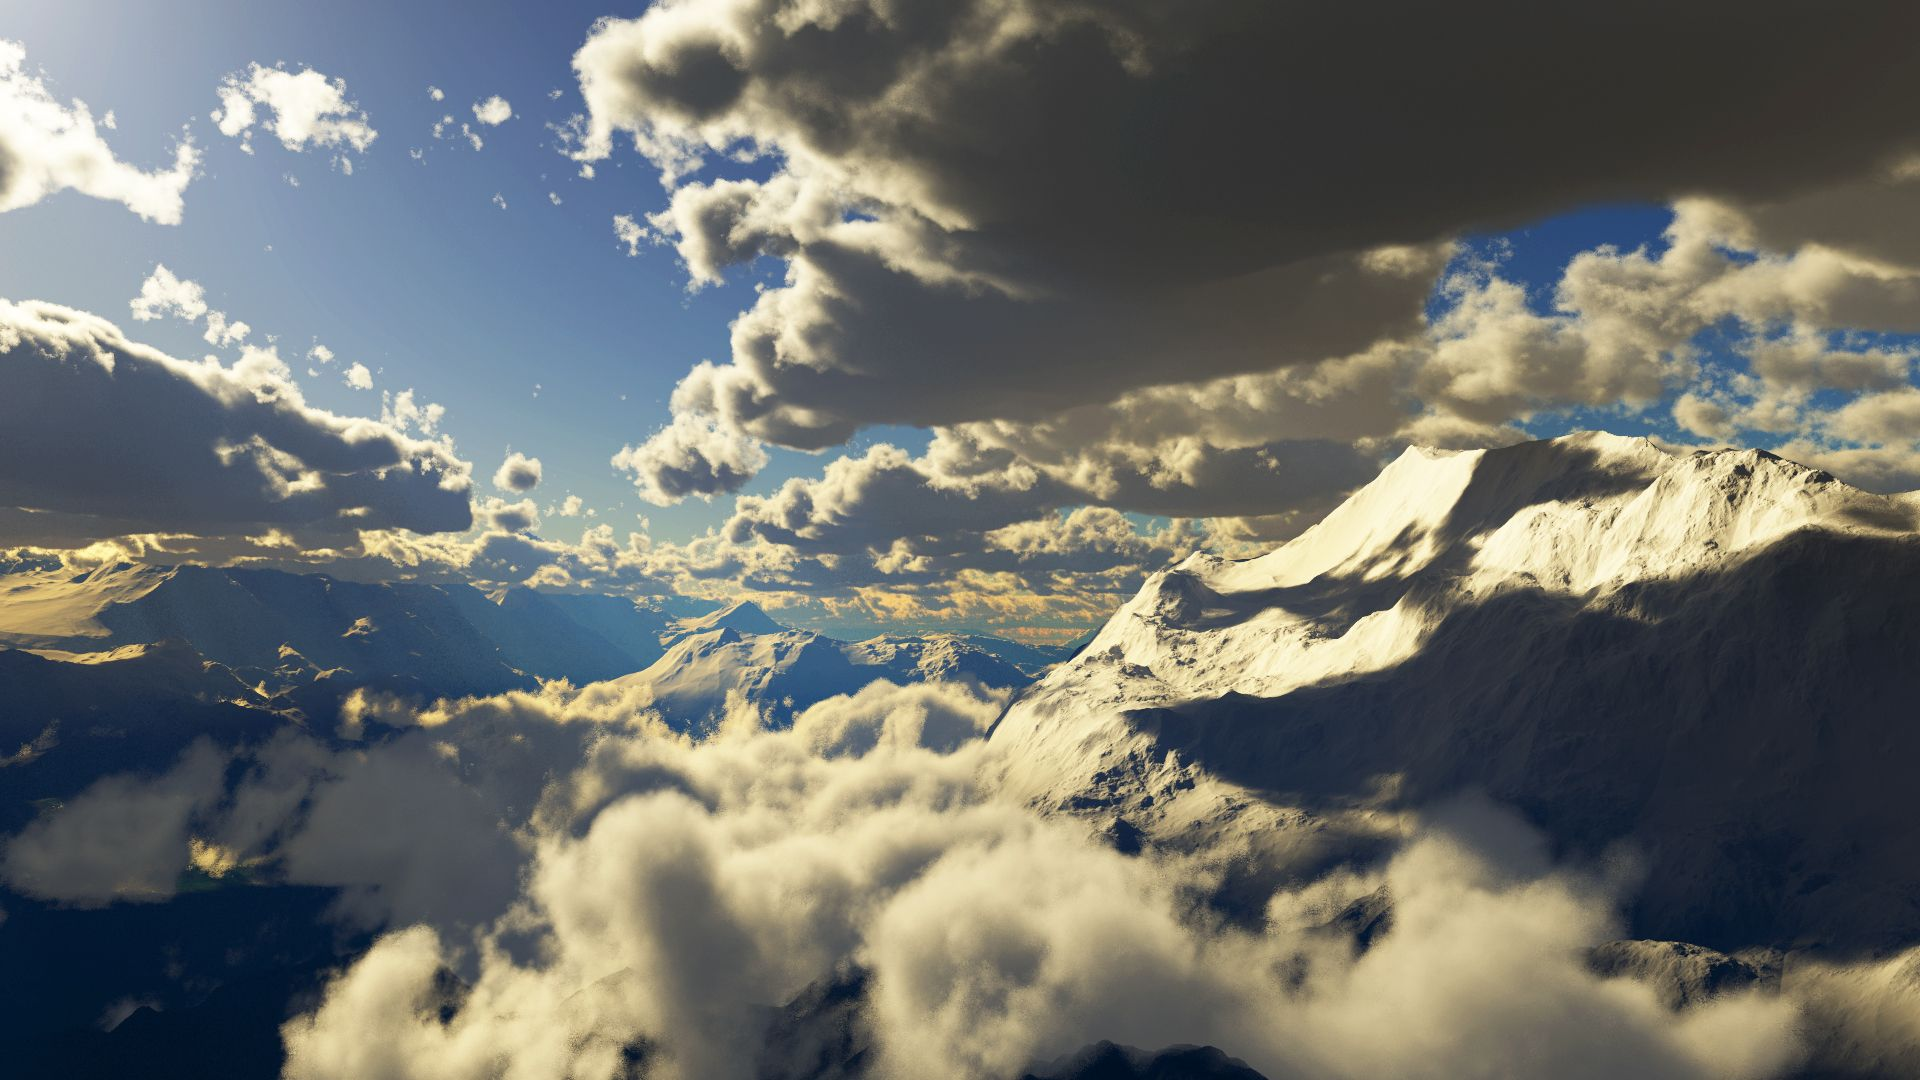 Beautiful Wallpaper Mountain Cloud - 14f5fa301e4d4da4e120eda7b0f05c6b  Trends_685216.jpg